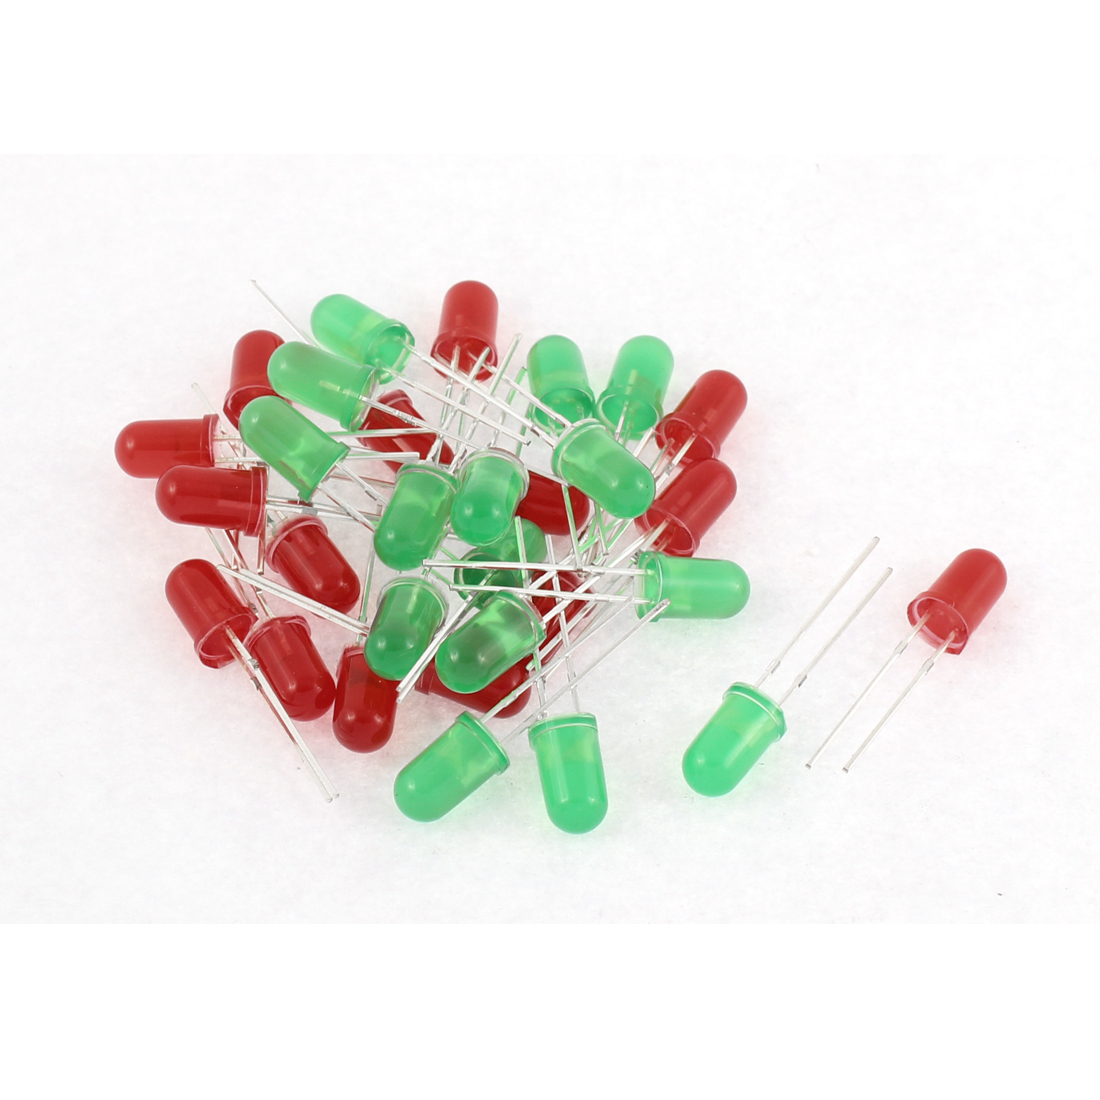 30pcs 5mm Round Top Red Green Lights Diffused LED Emitting Diode Beads